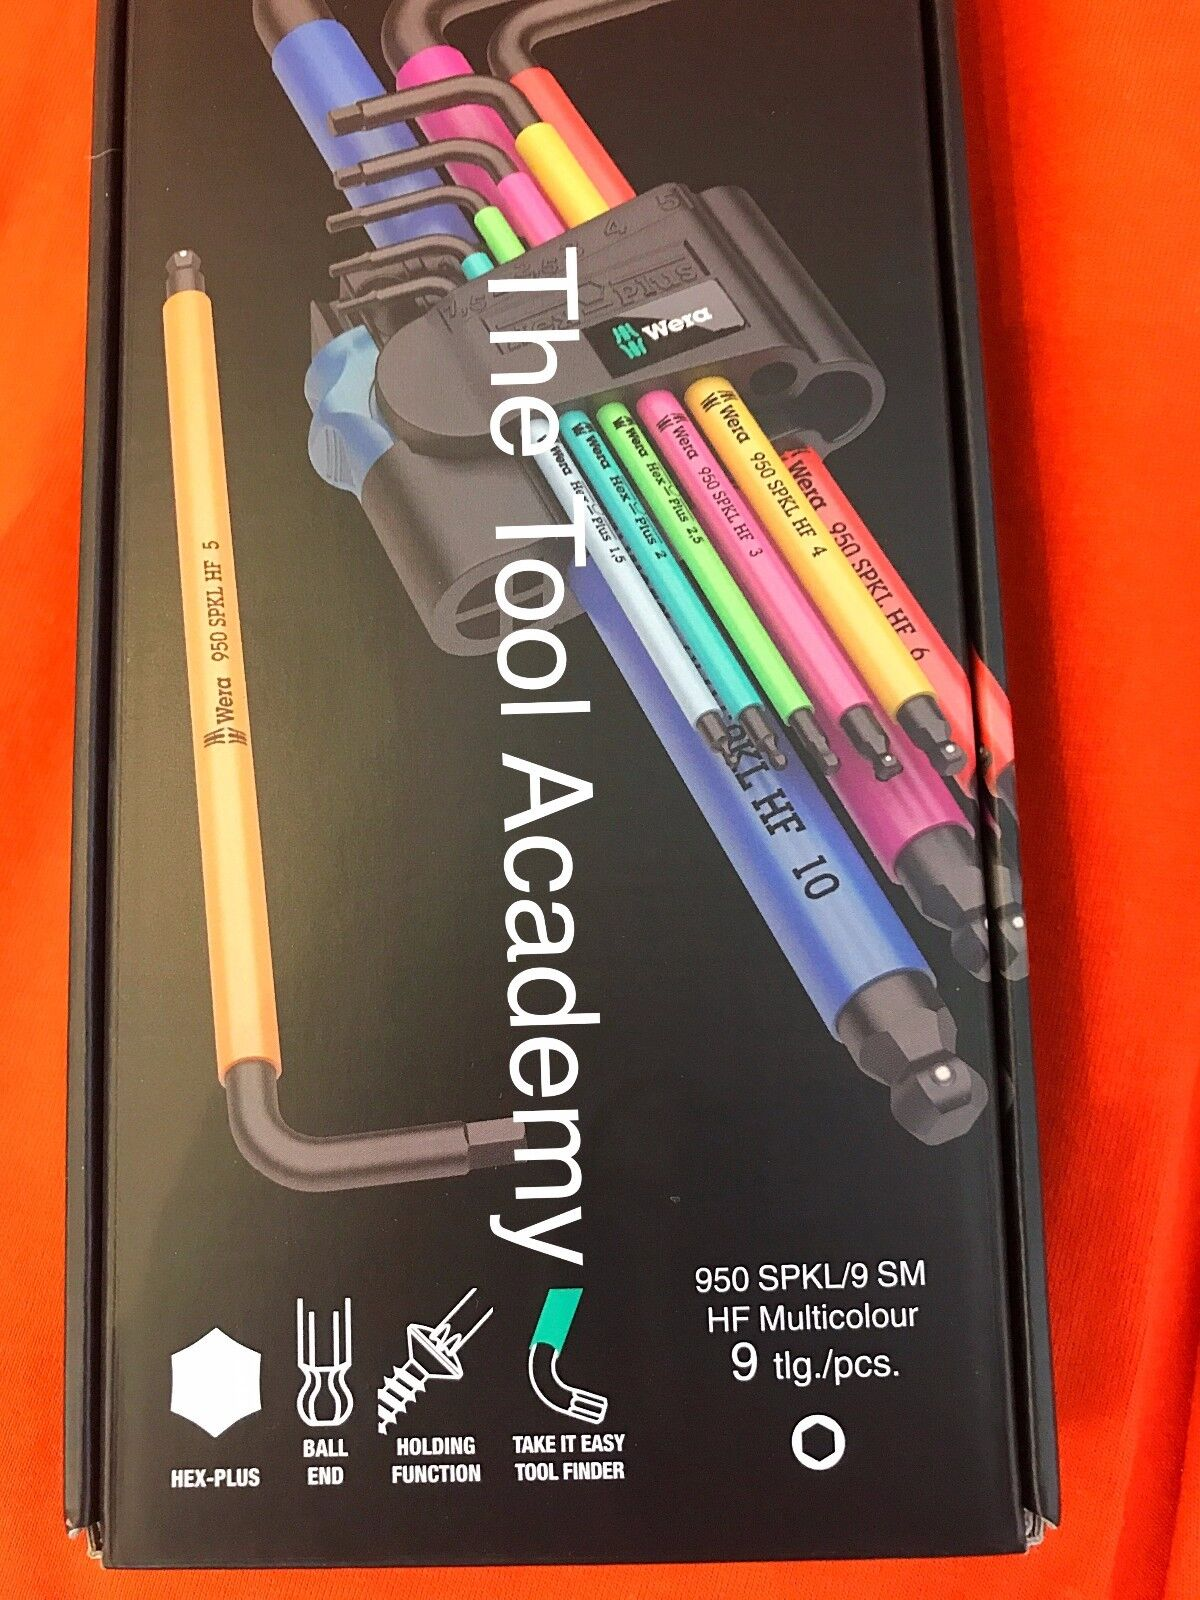 Wera Tools Brightly Colour With Socket Holding Function Ball Allen Key Hex Set